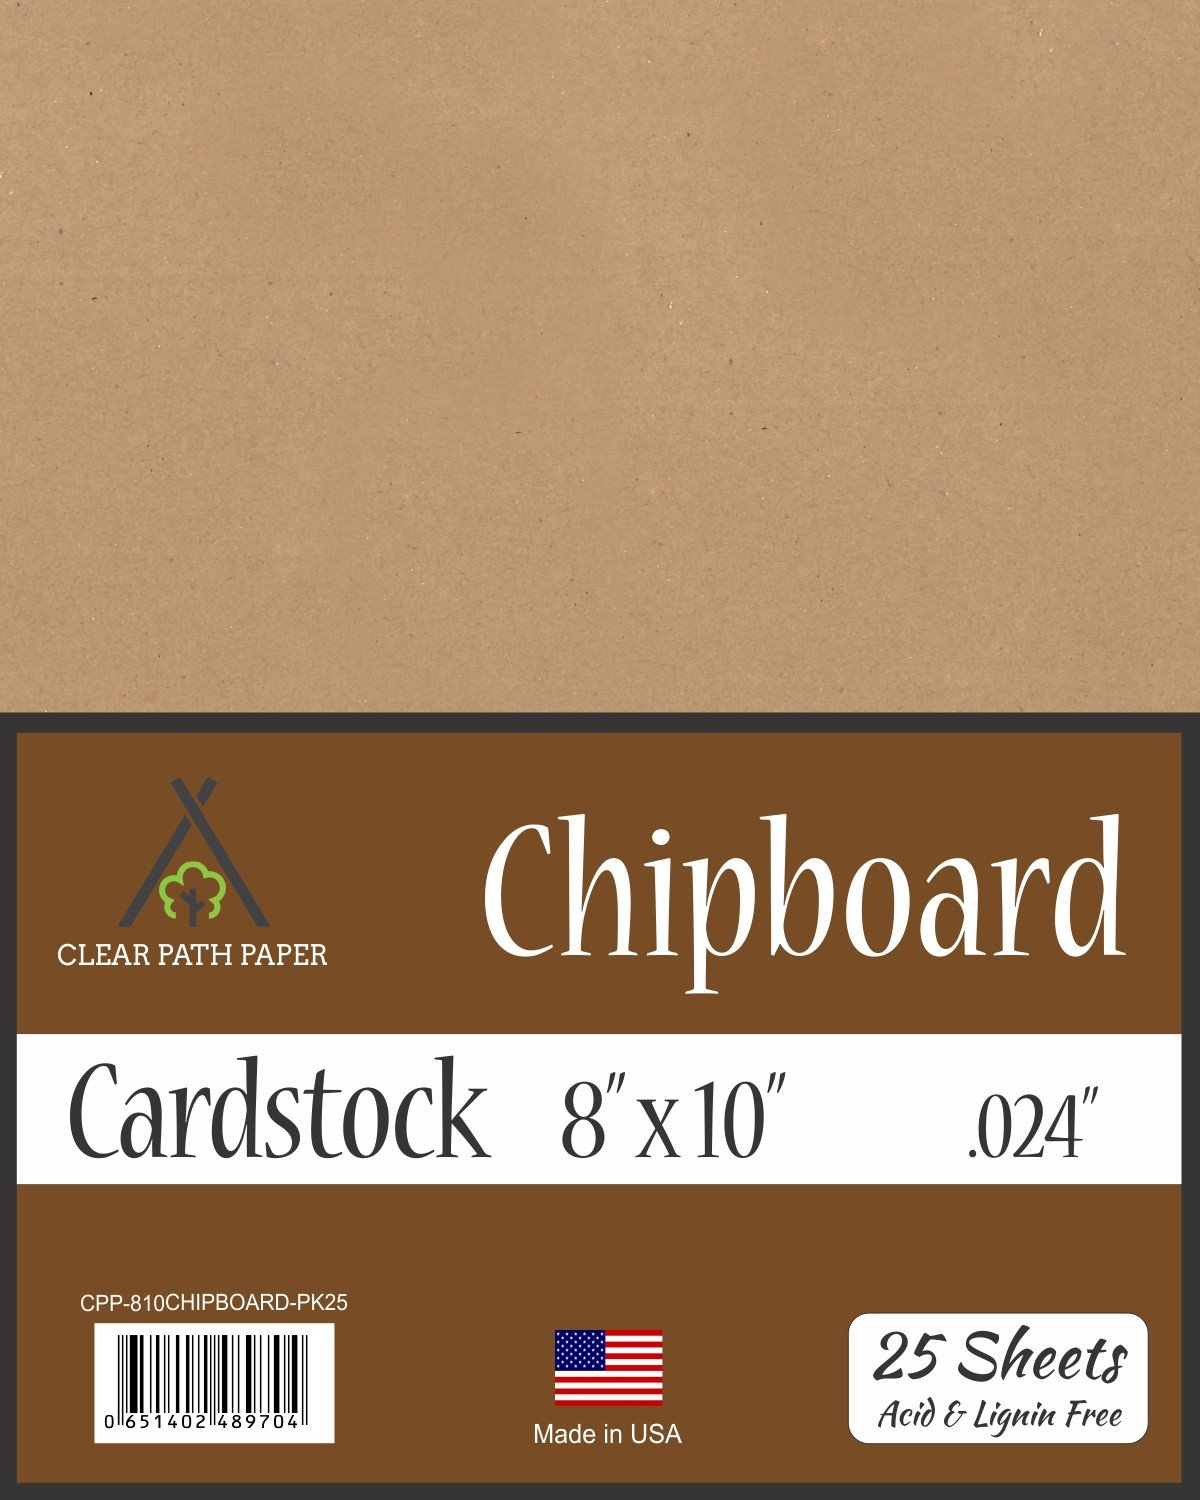 Chipboard - 8 x 10 inch - .024 Thick - 25 Sheets Clear Path Paper 4336978338